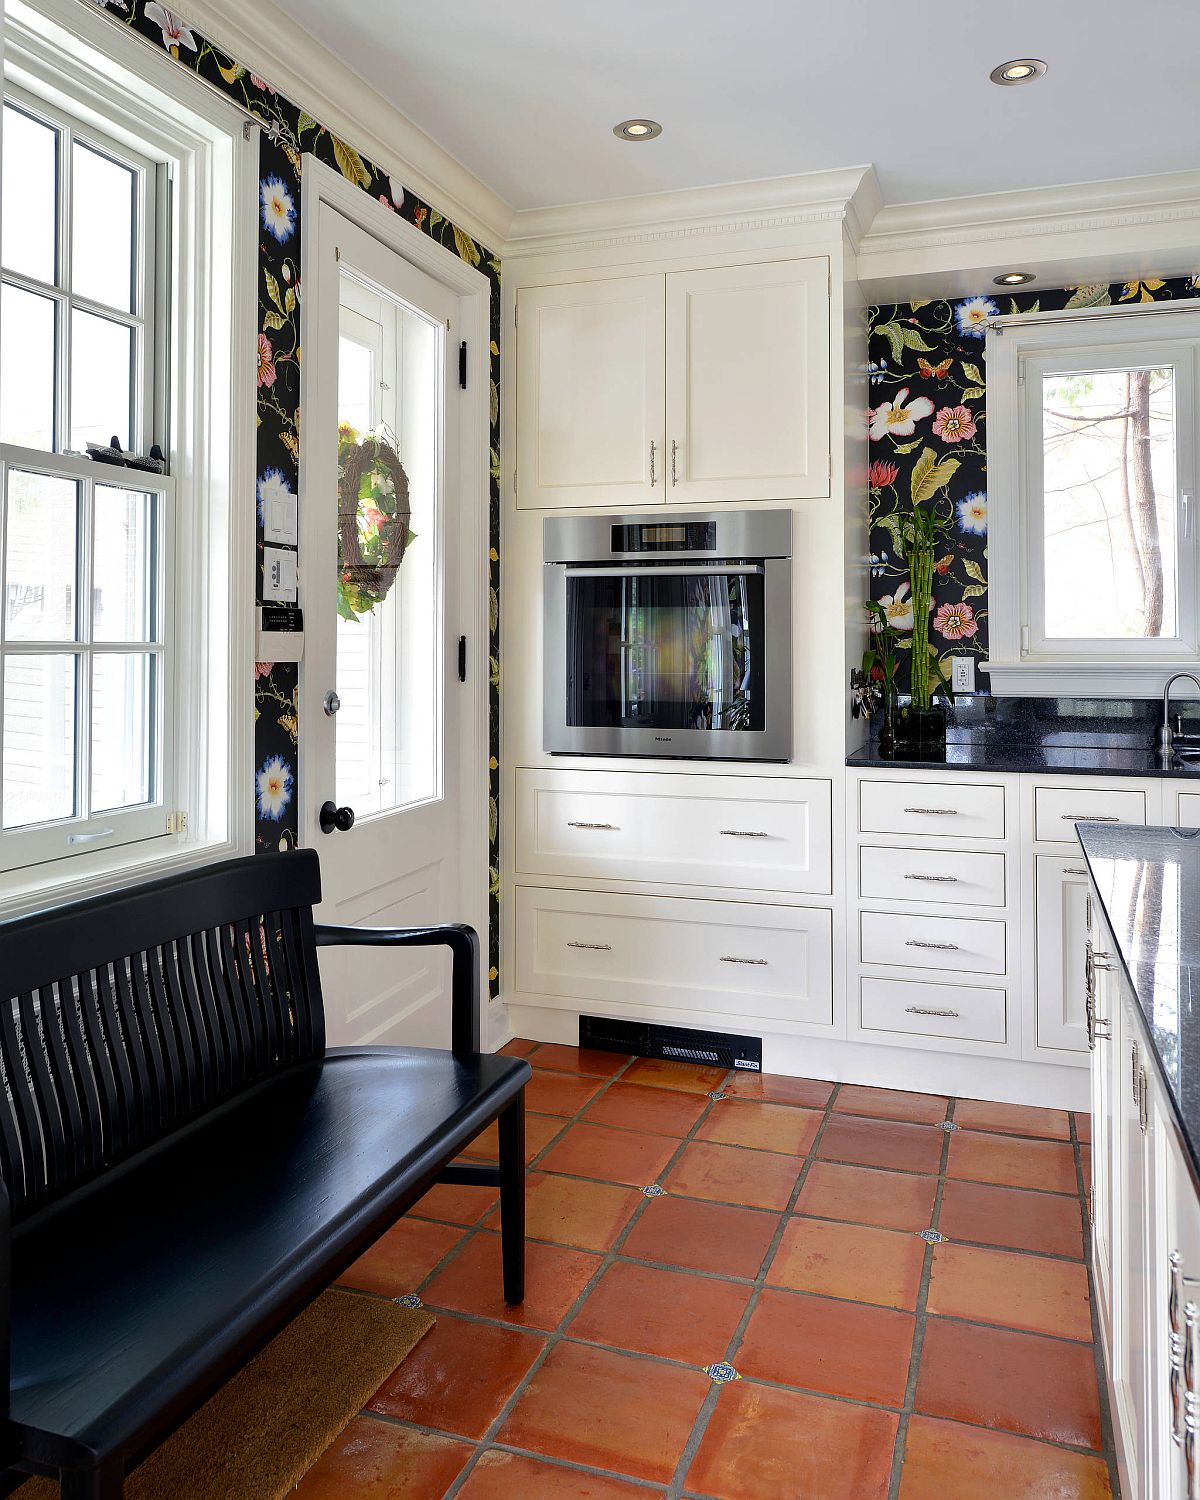 Wallpaper with flower pattern brings color and contrast to the kitchen in white